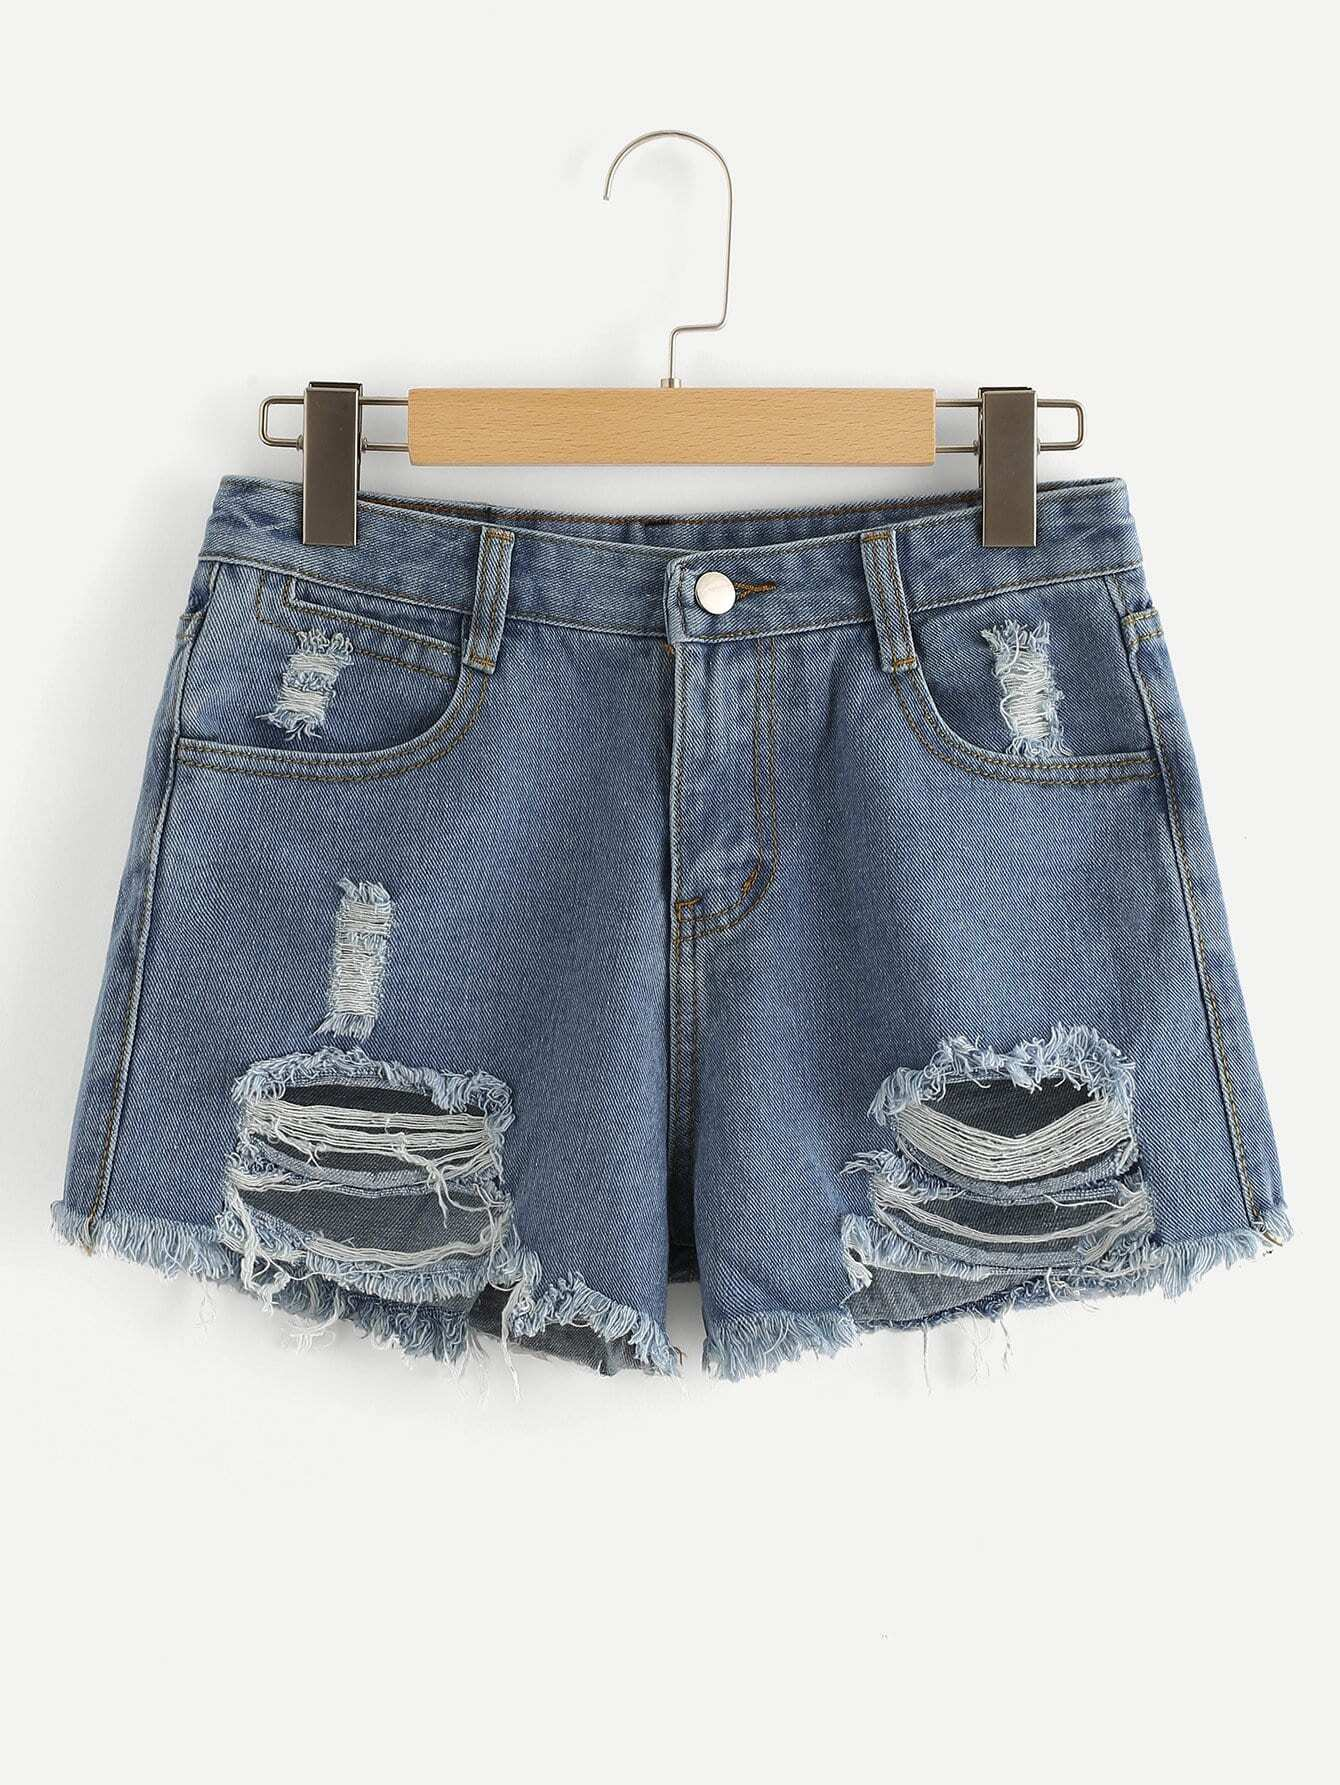 Frayed Hem Ripped Denim Shorts stud earrings modis m181a00813 women earring jewelry decoration for female tmallfs